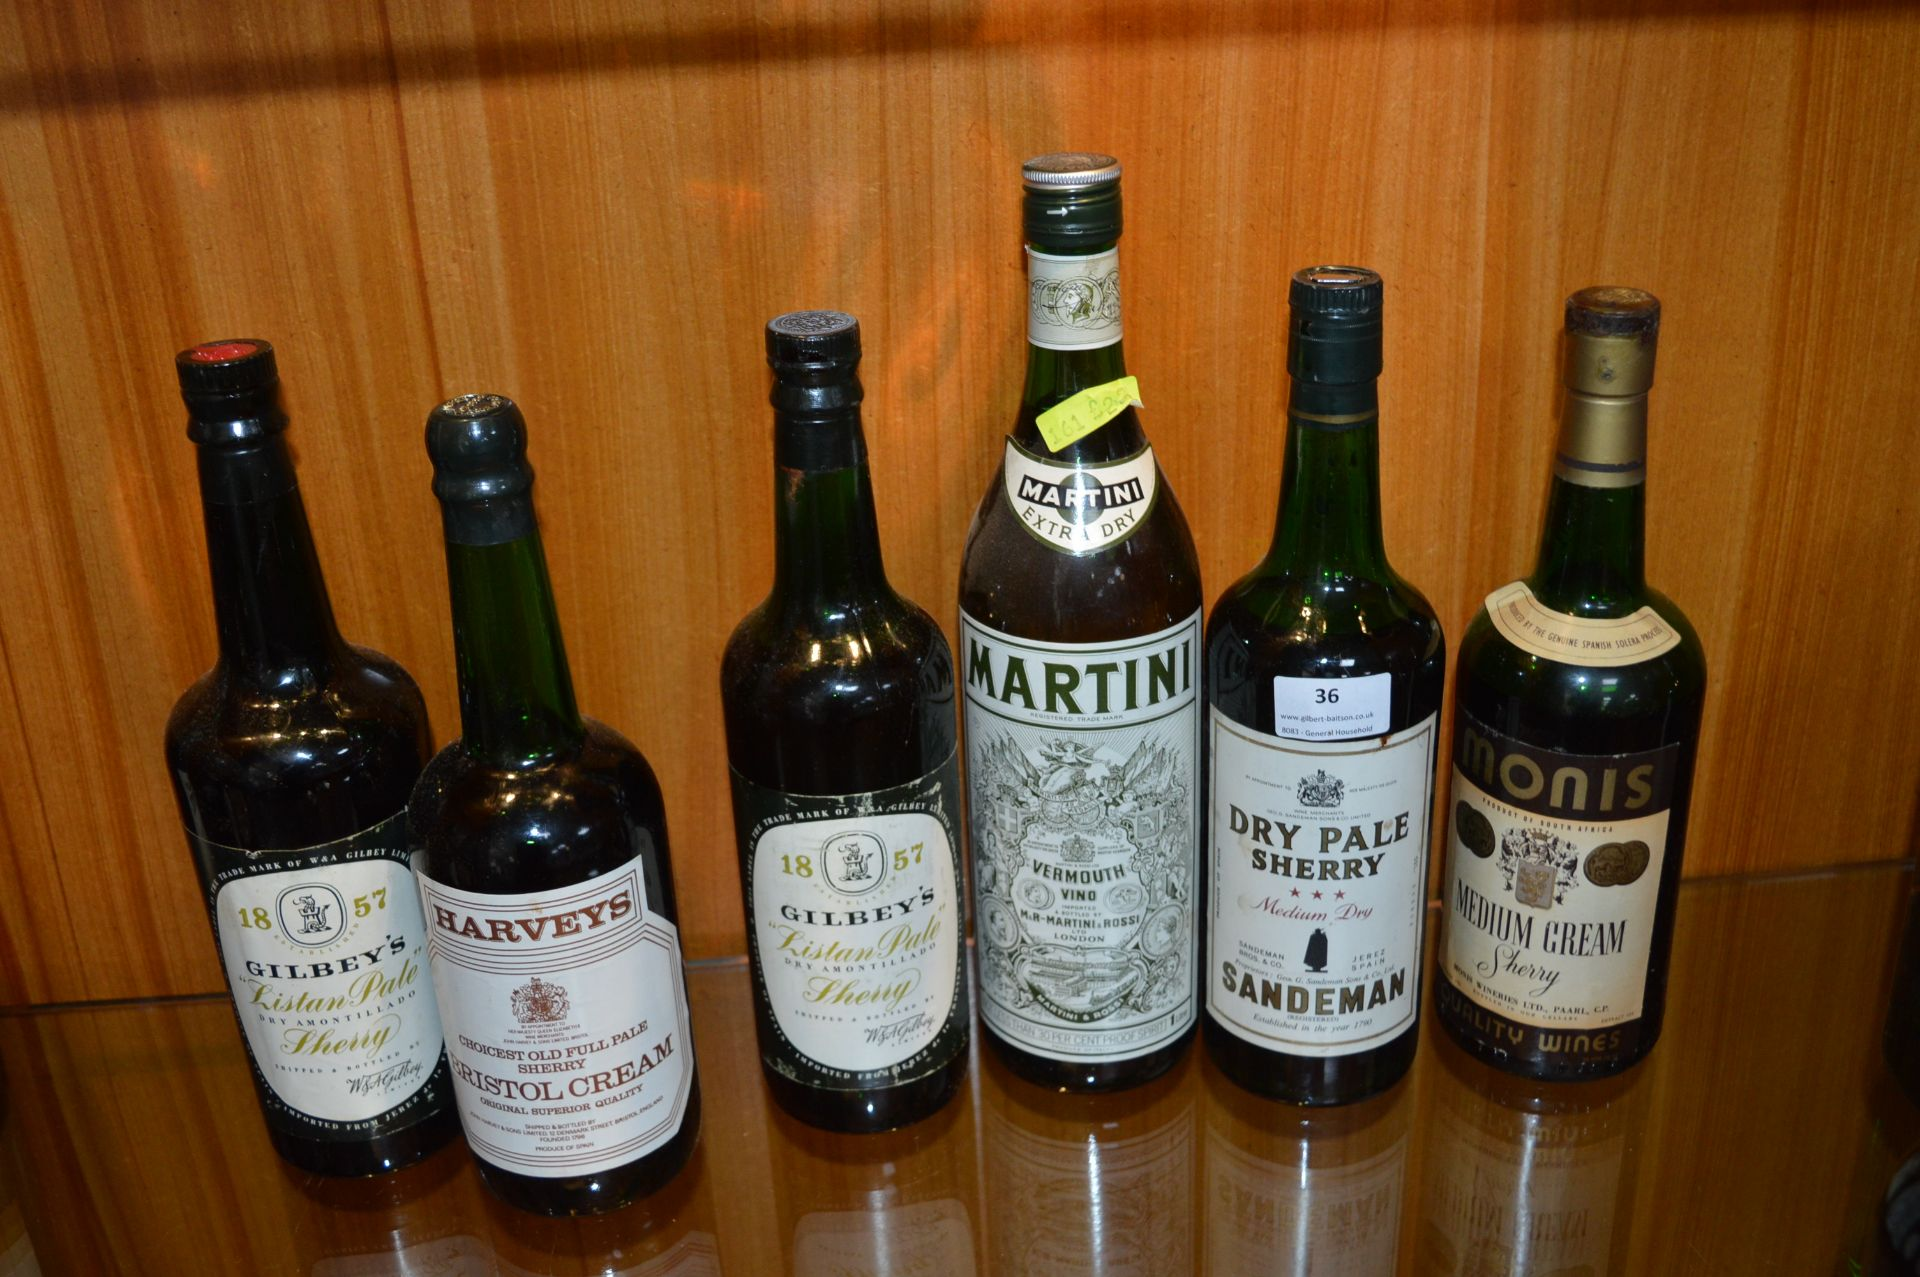 Lot 36 - Five Bottles of Sherry and a Bottle of Martini Ext